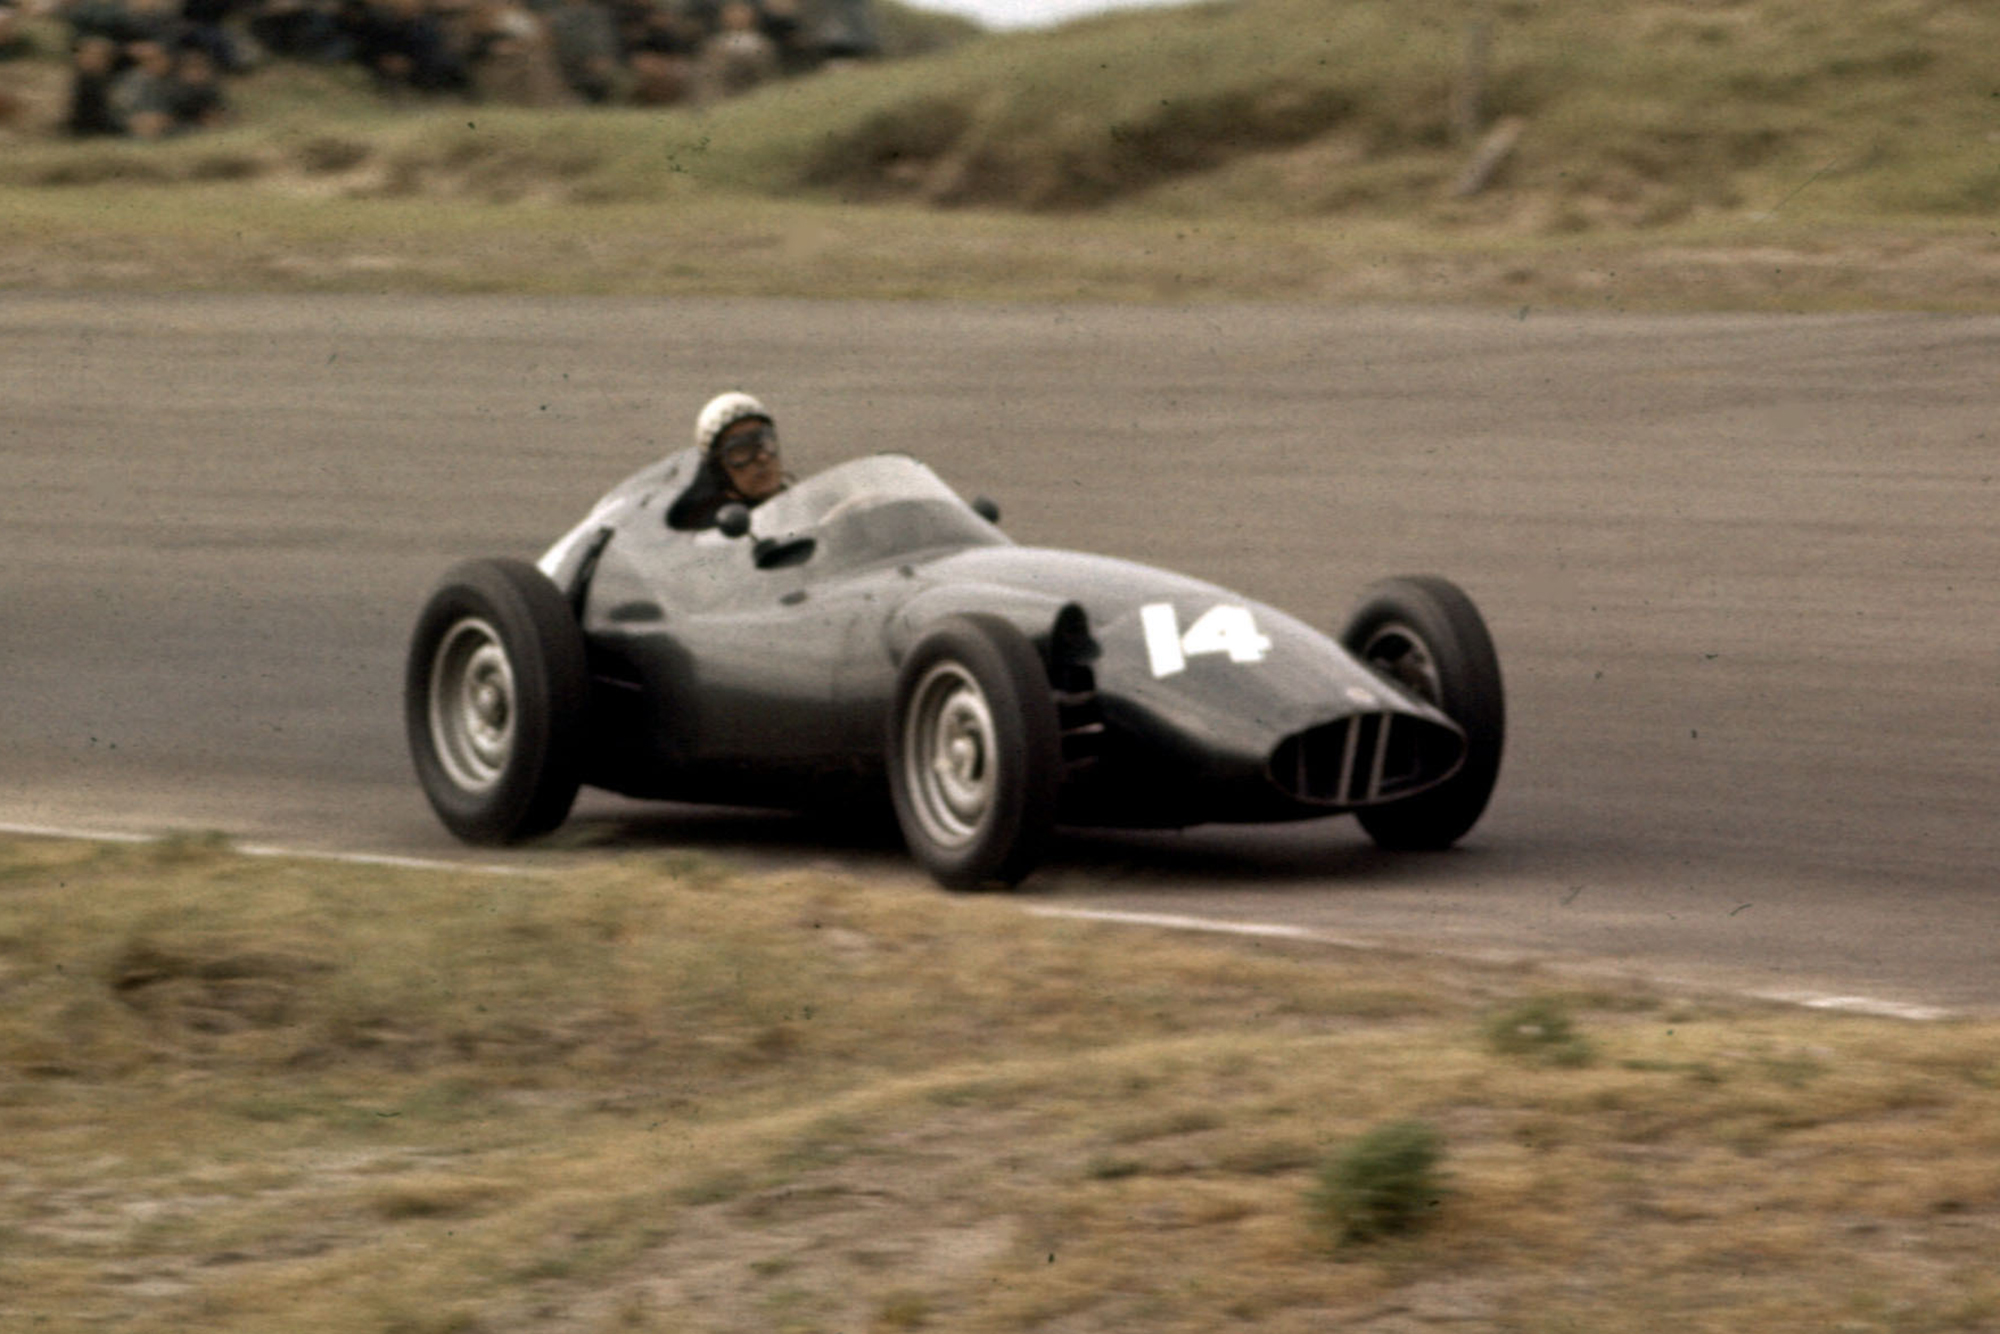 Jean Behra driving a BRM P25, who went on to finish in 3rd